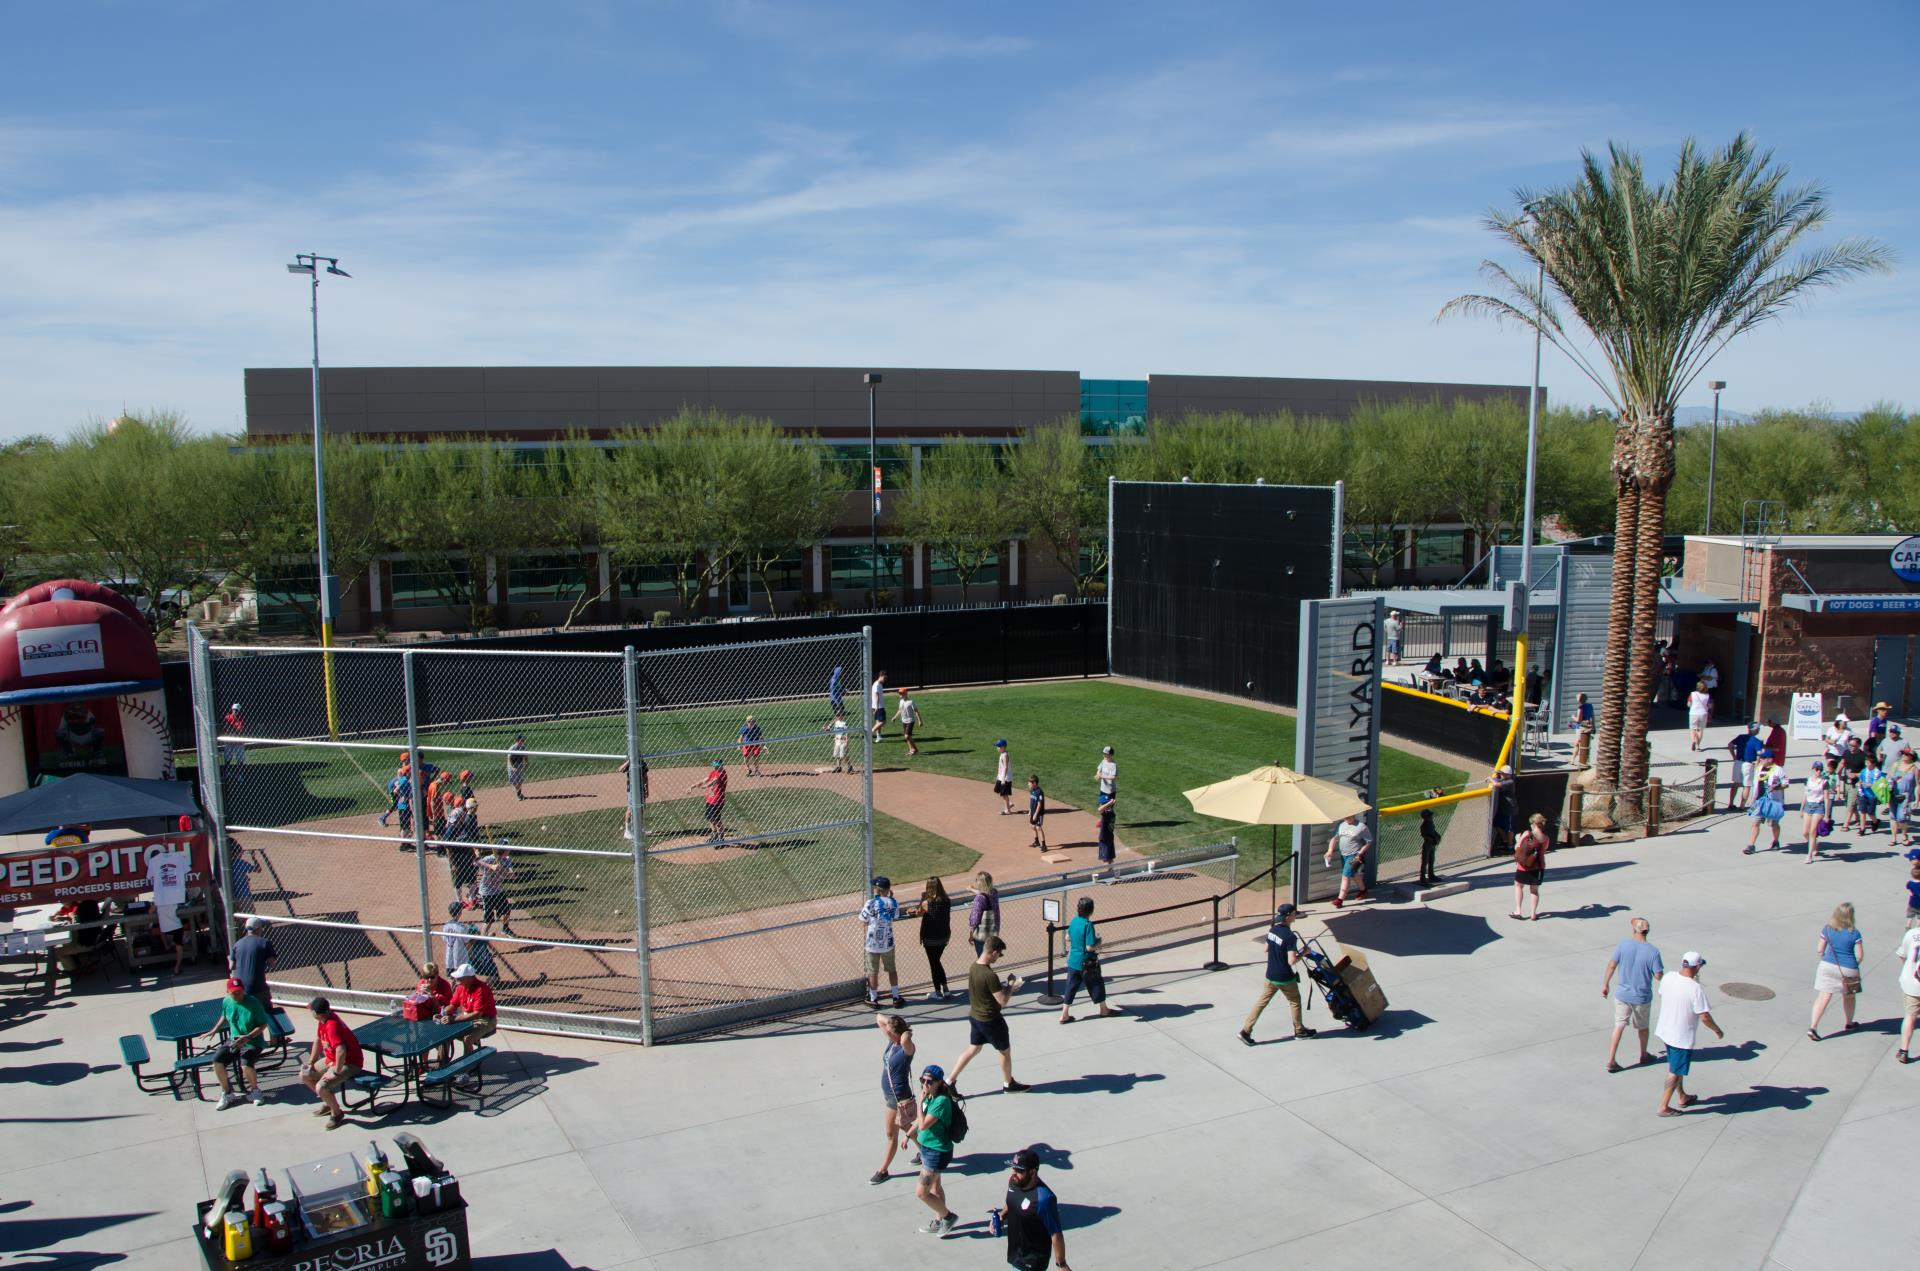 Child size baseball field at Peoria Sports Complex